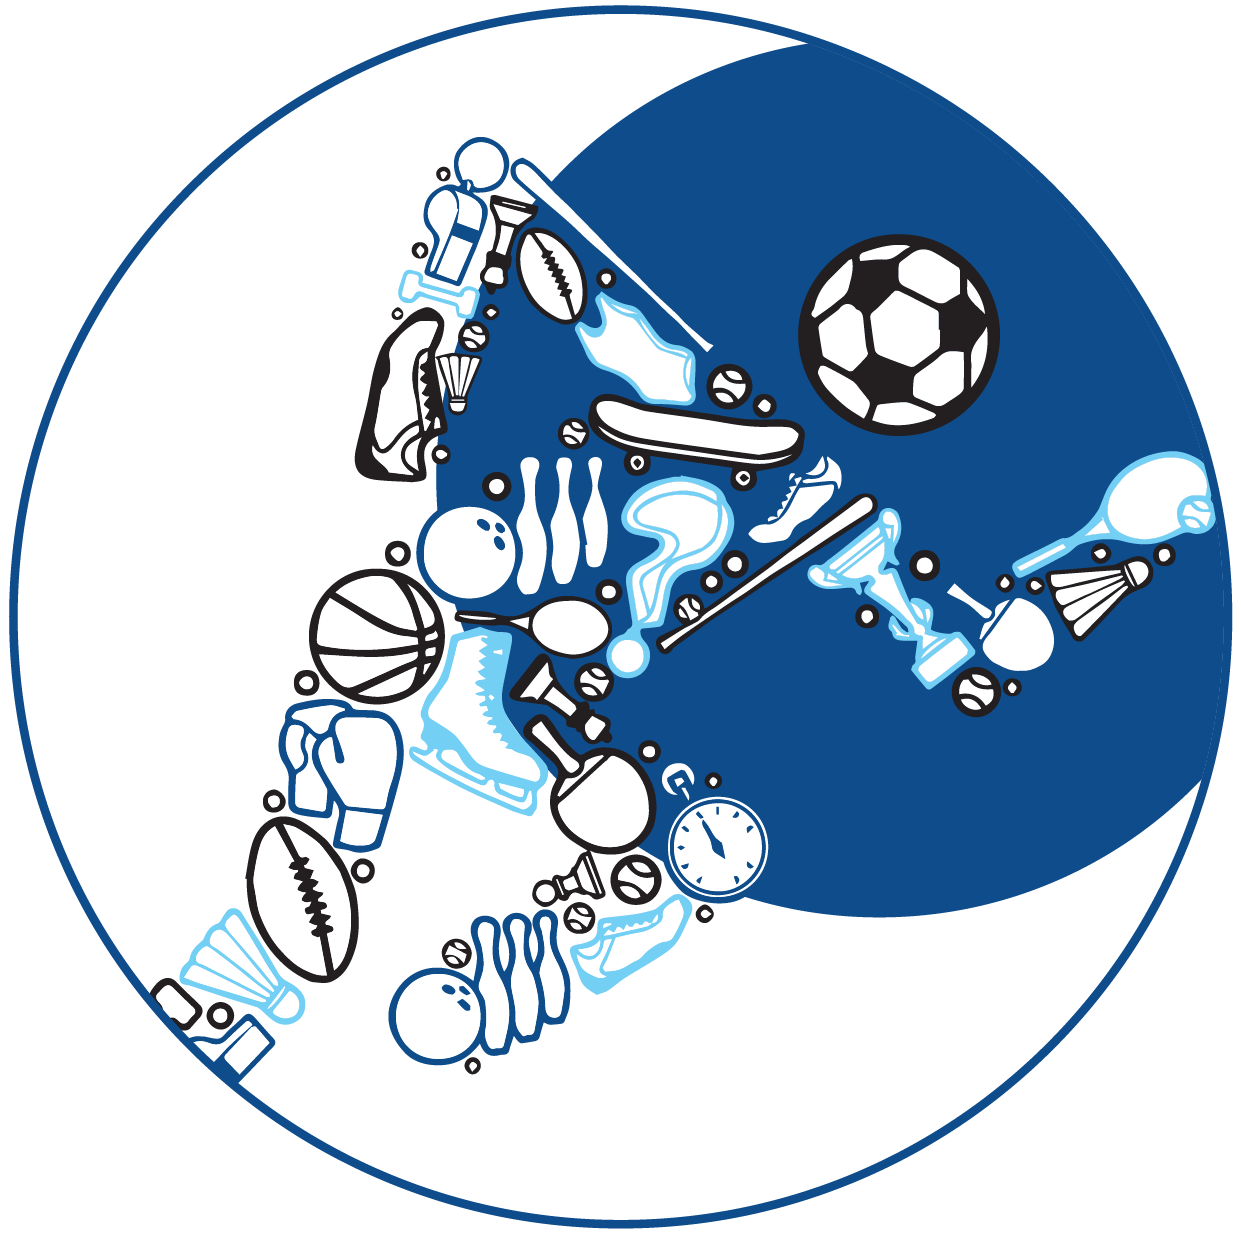 Coach clipart sports coach. Sport development articles and